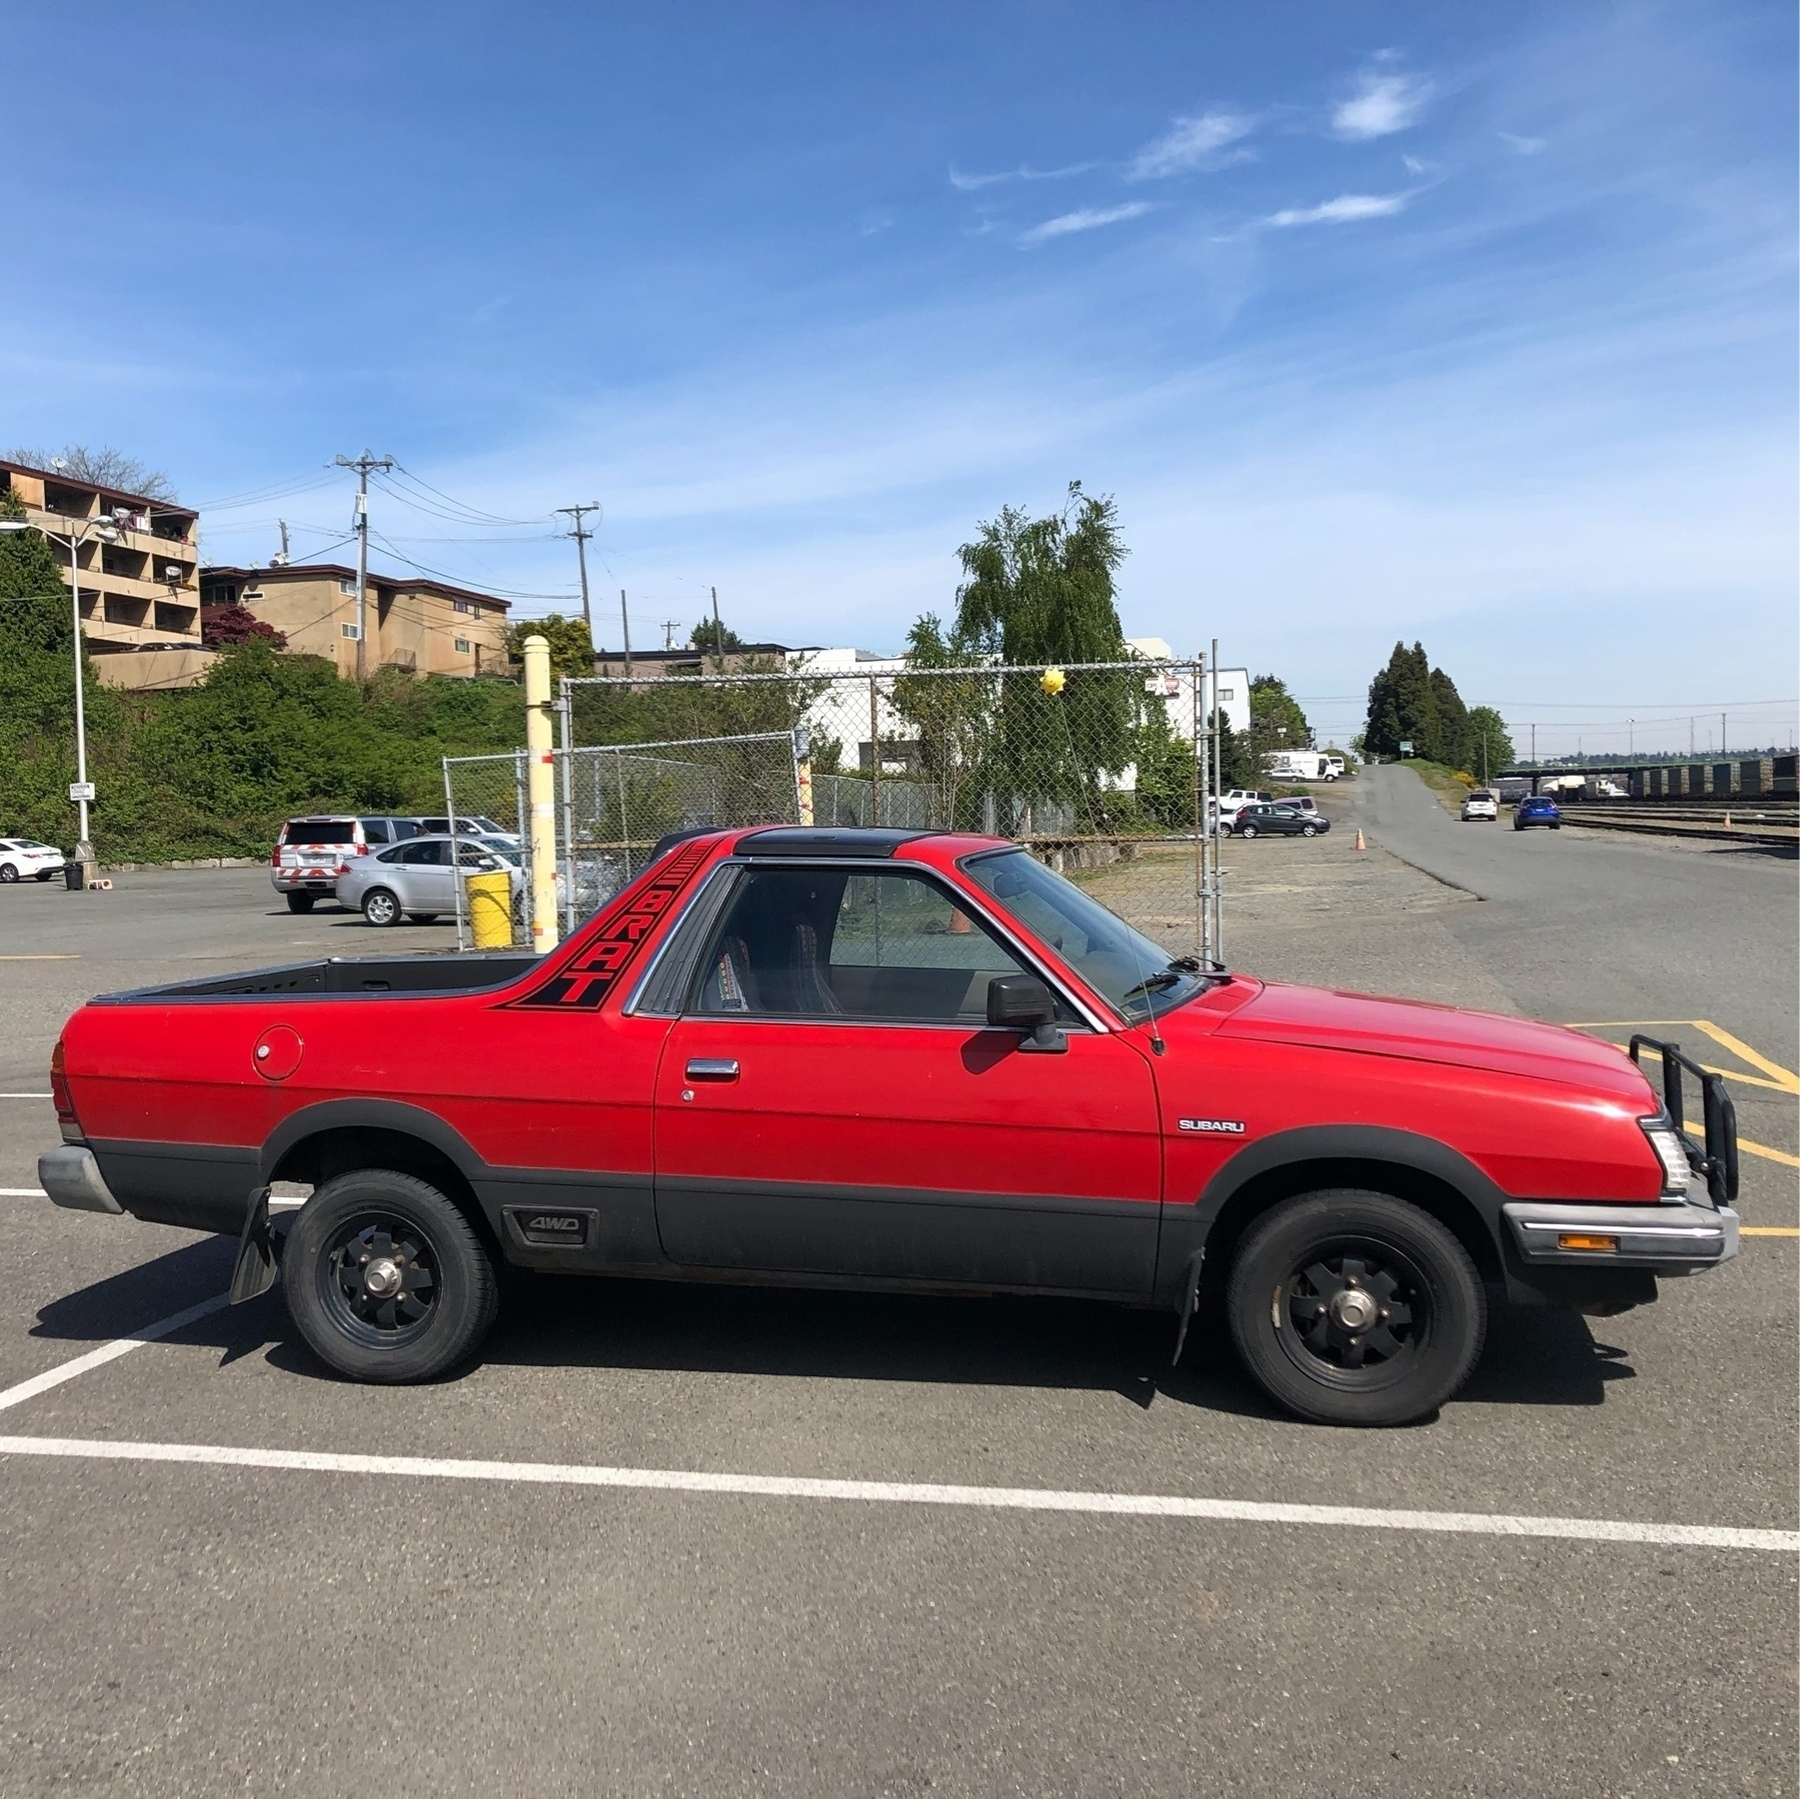 A red Subaru Brat. (A car with a pick up truck rear end)